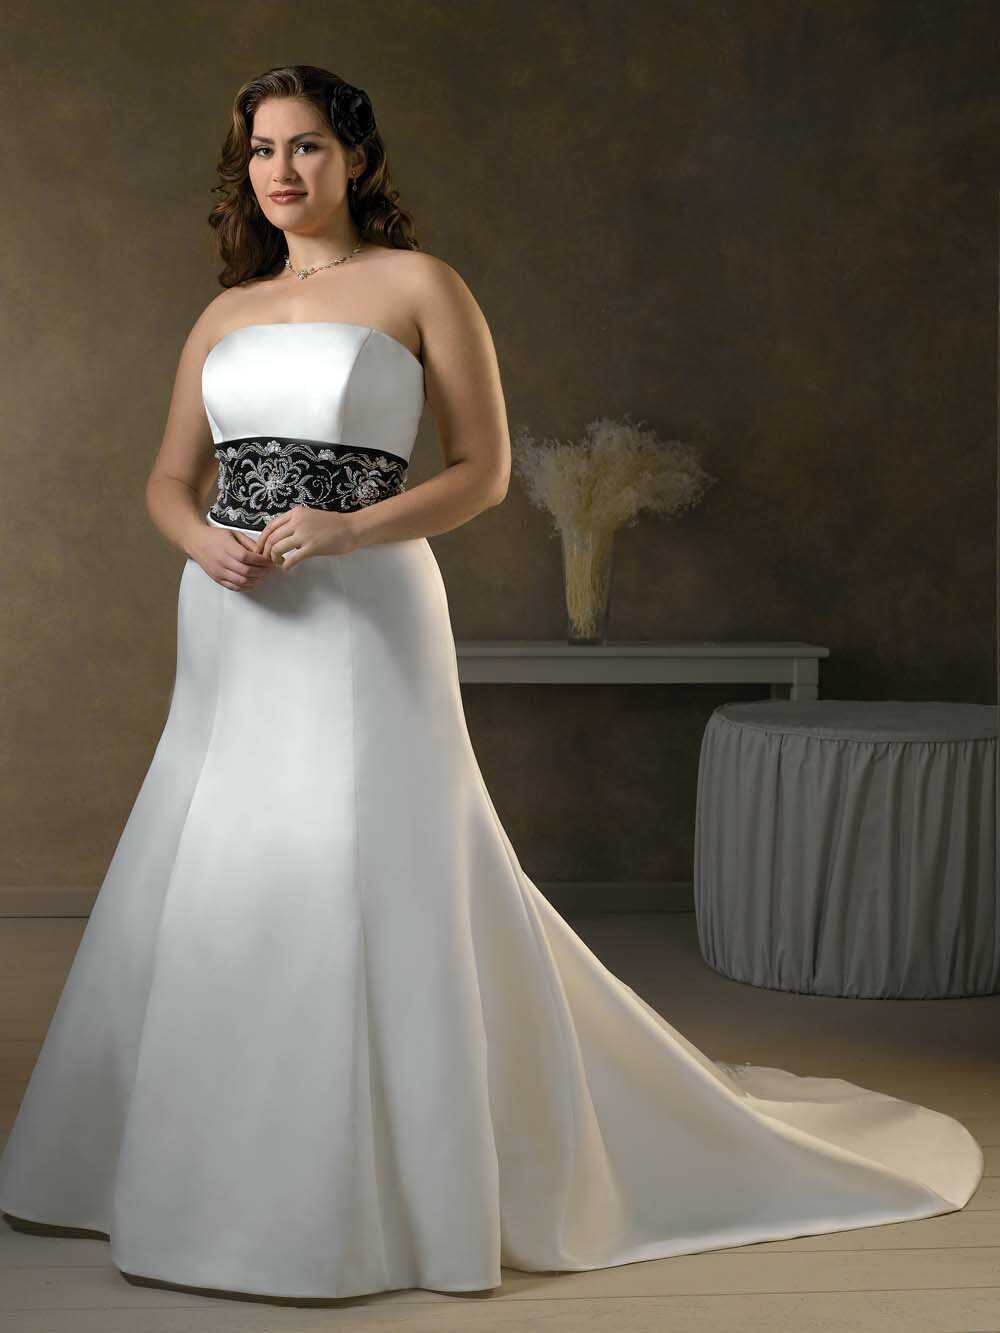 Petite plus size wedding dress dress ideas for Wedding dresses petite sizes